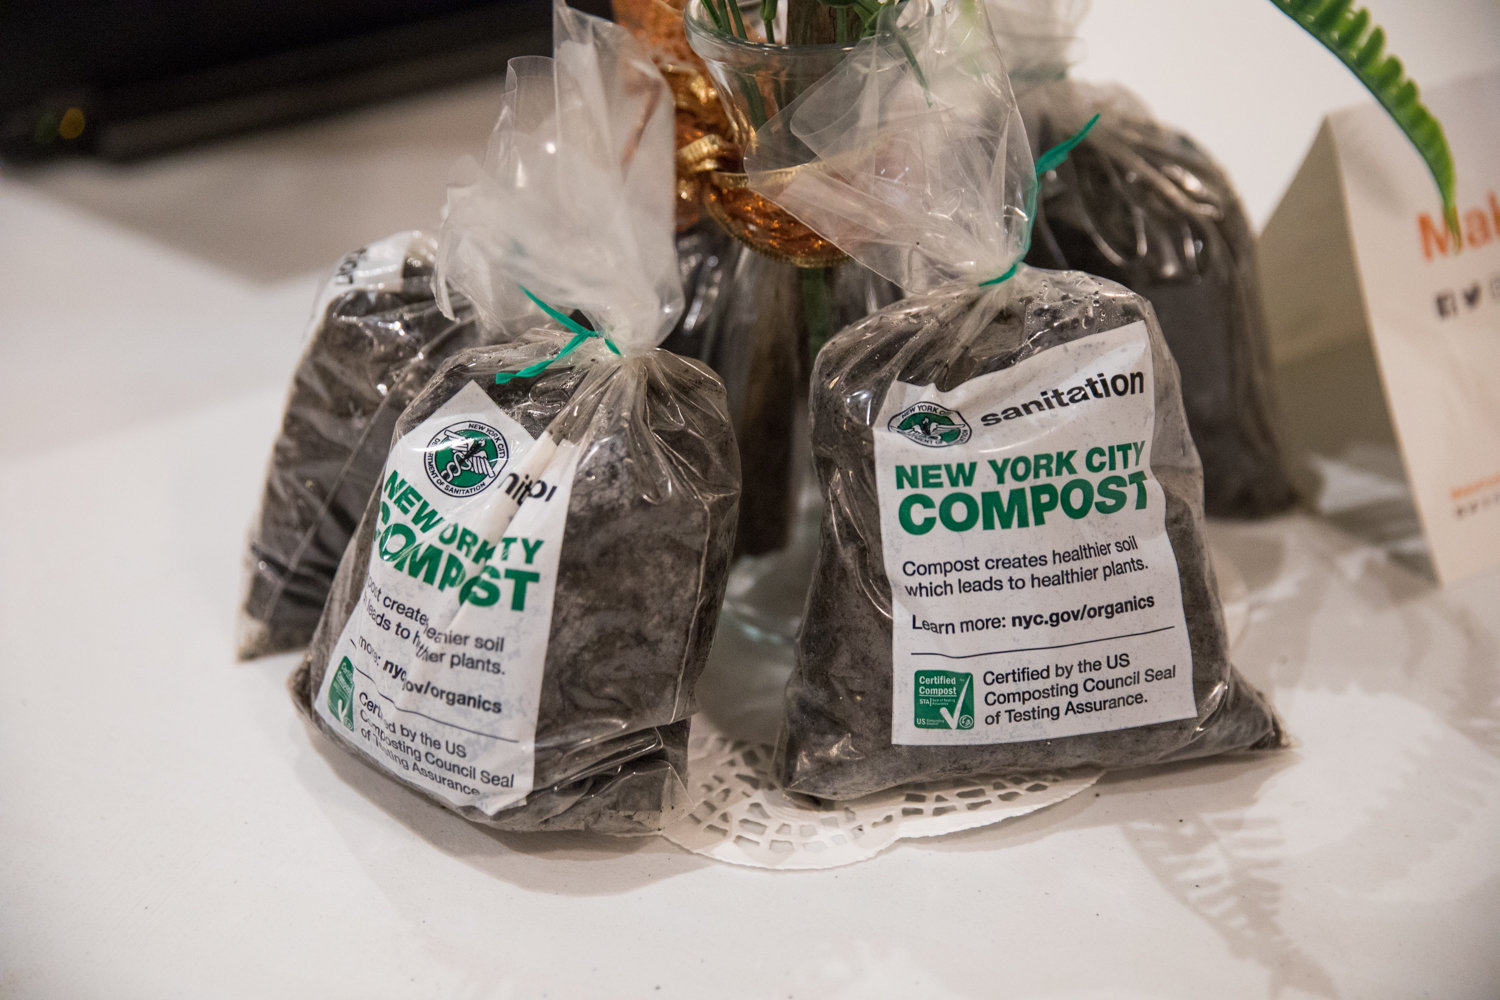 The sanitation department wants the city to 'make compost, not trash,' in order to put food waste to good use.